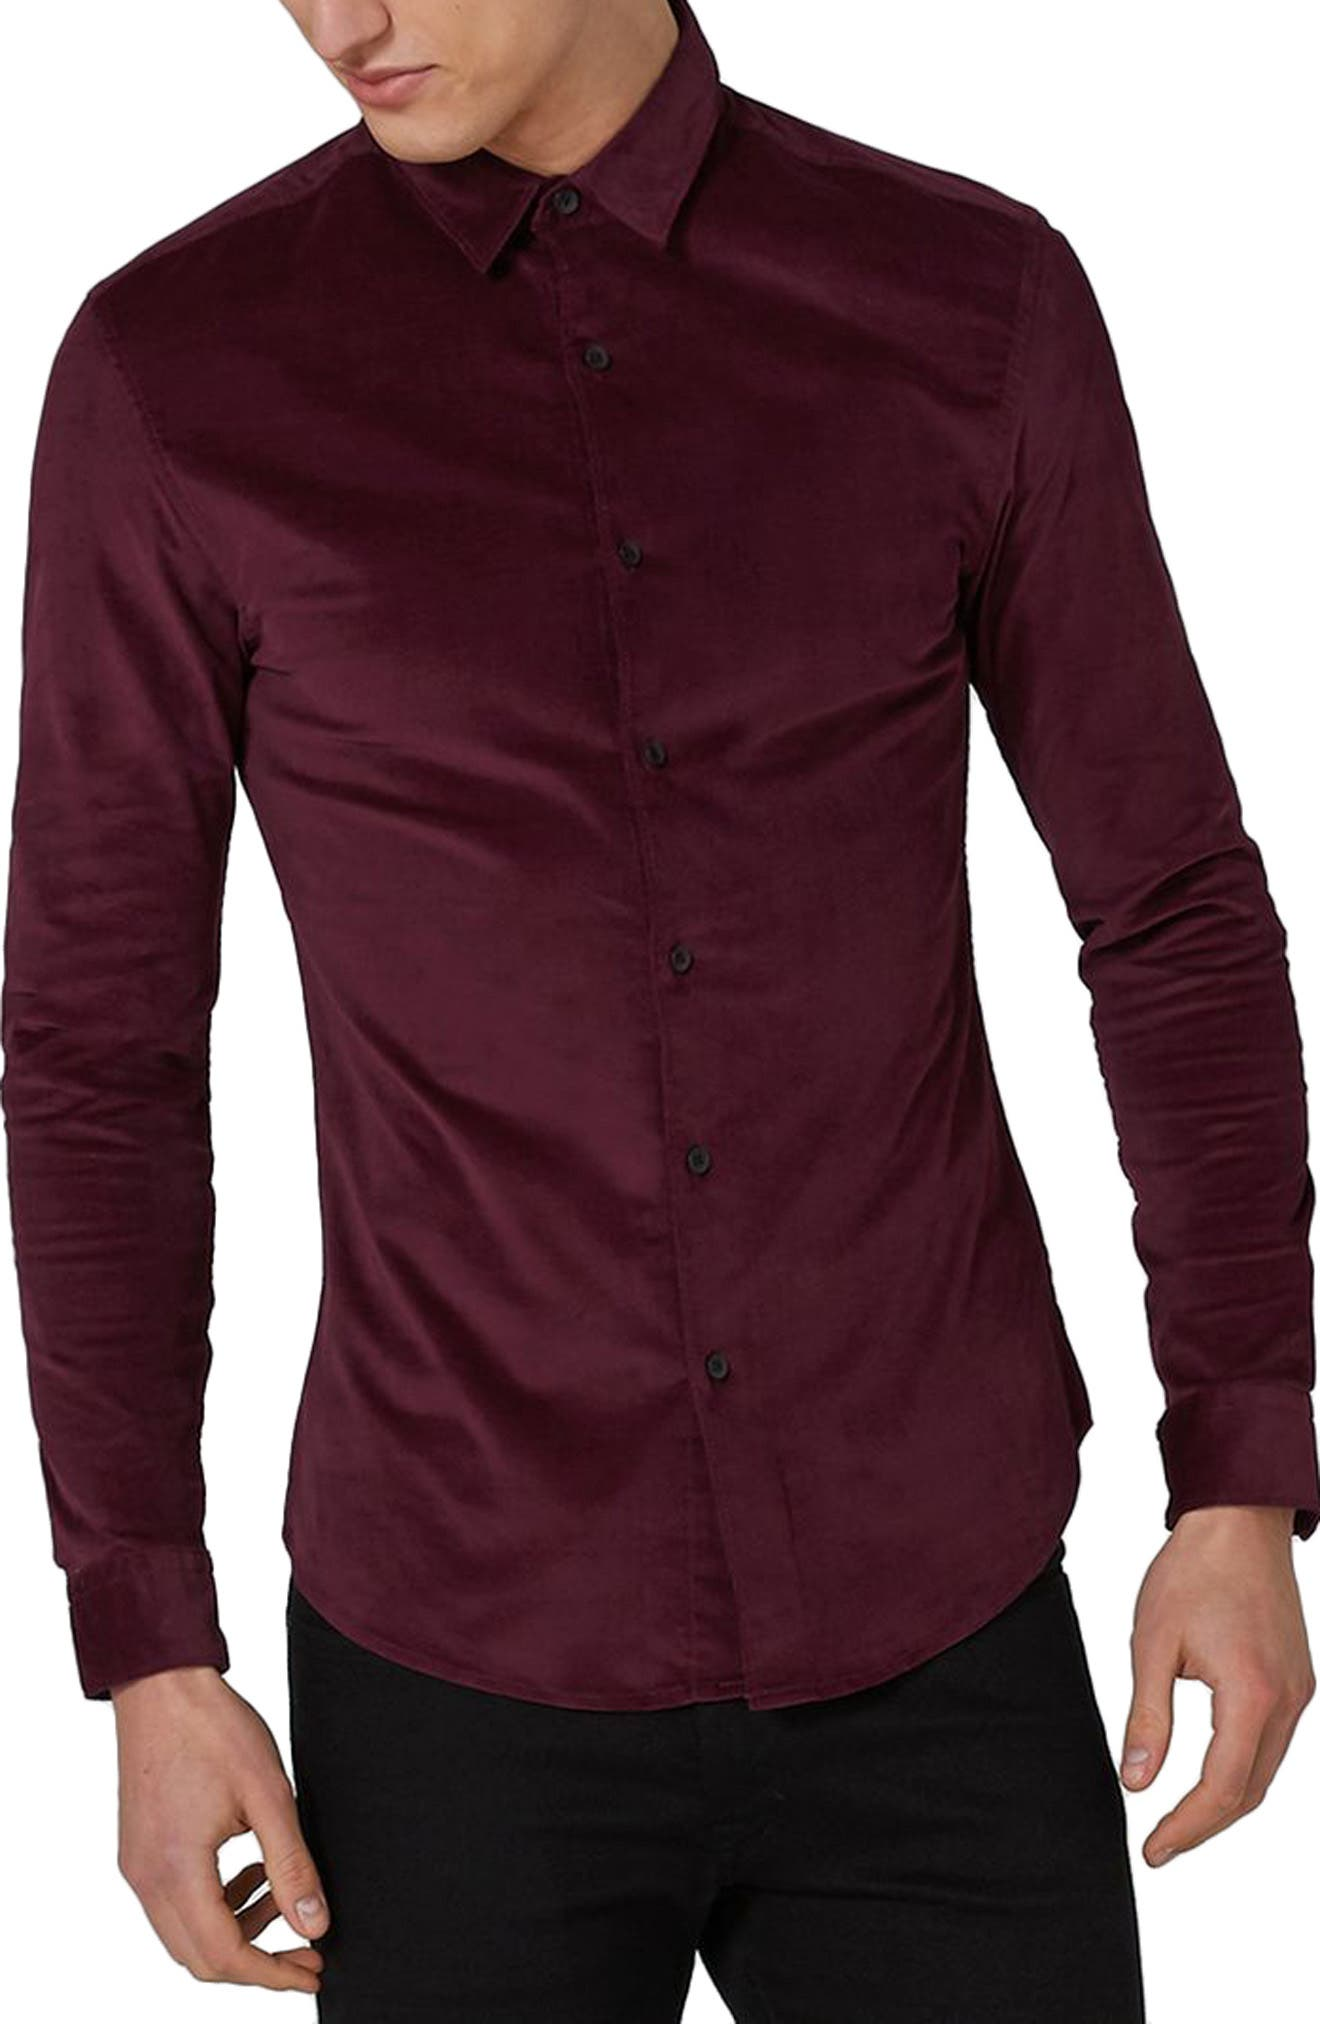 Muscle Fit Corduroy Shirt,                         Main,                         color, Burgundy